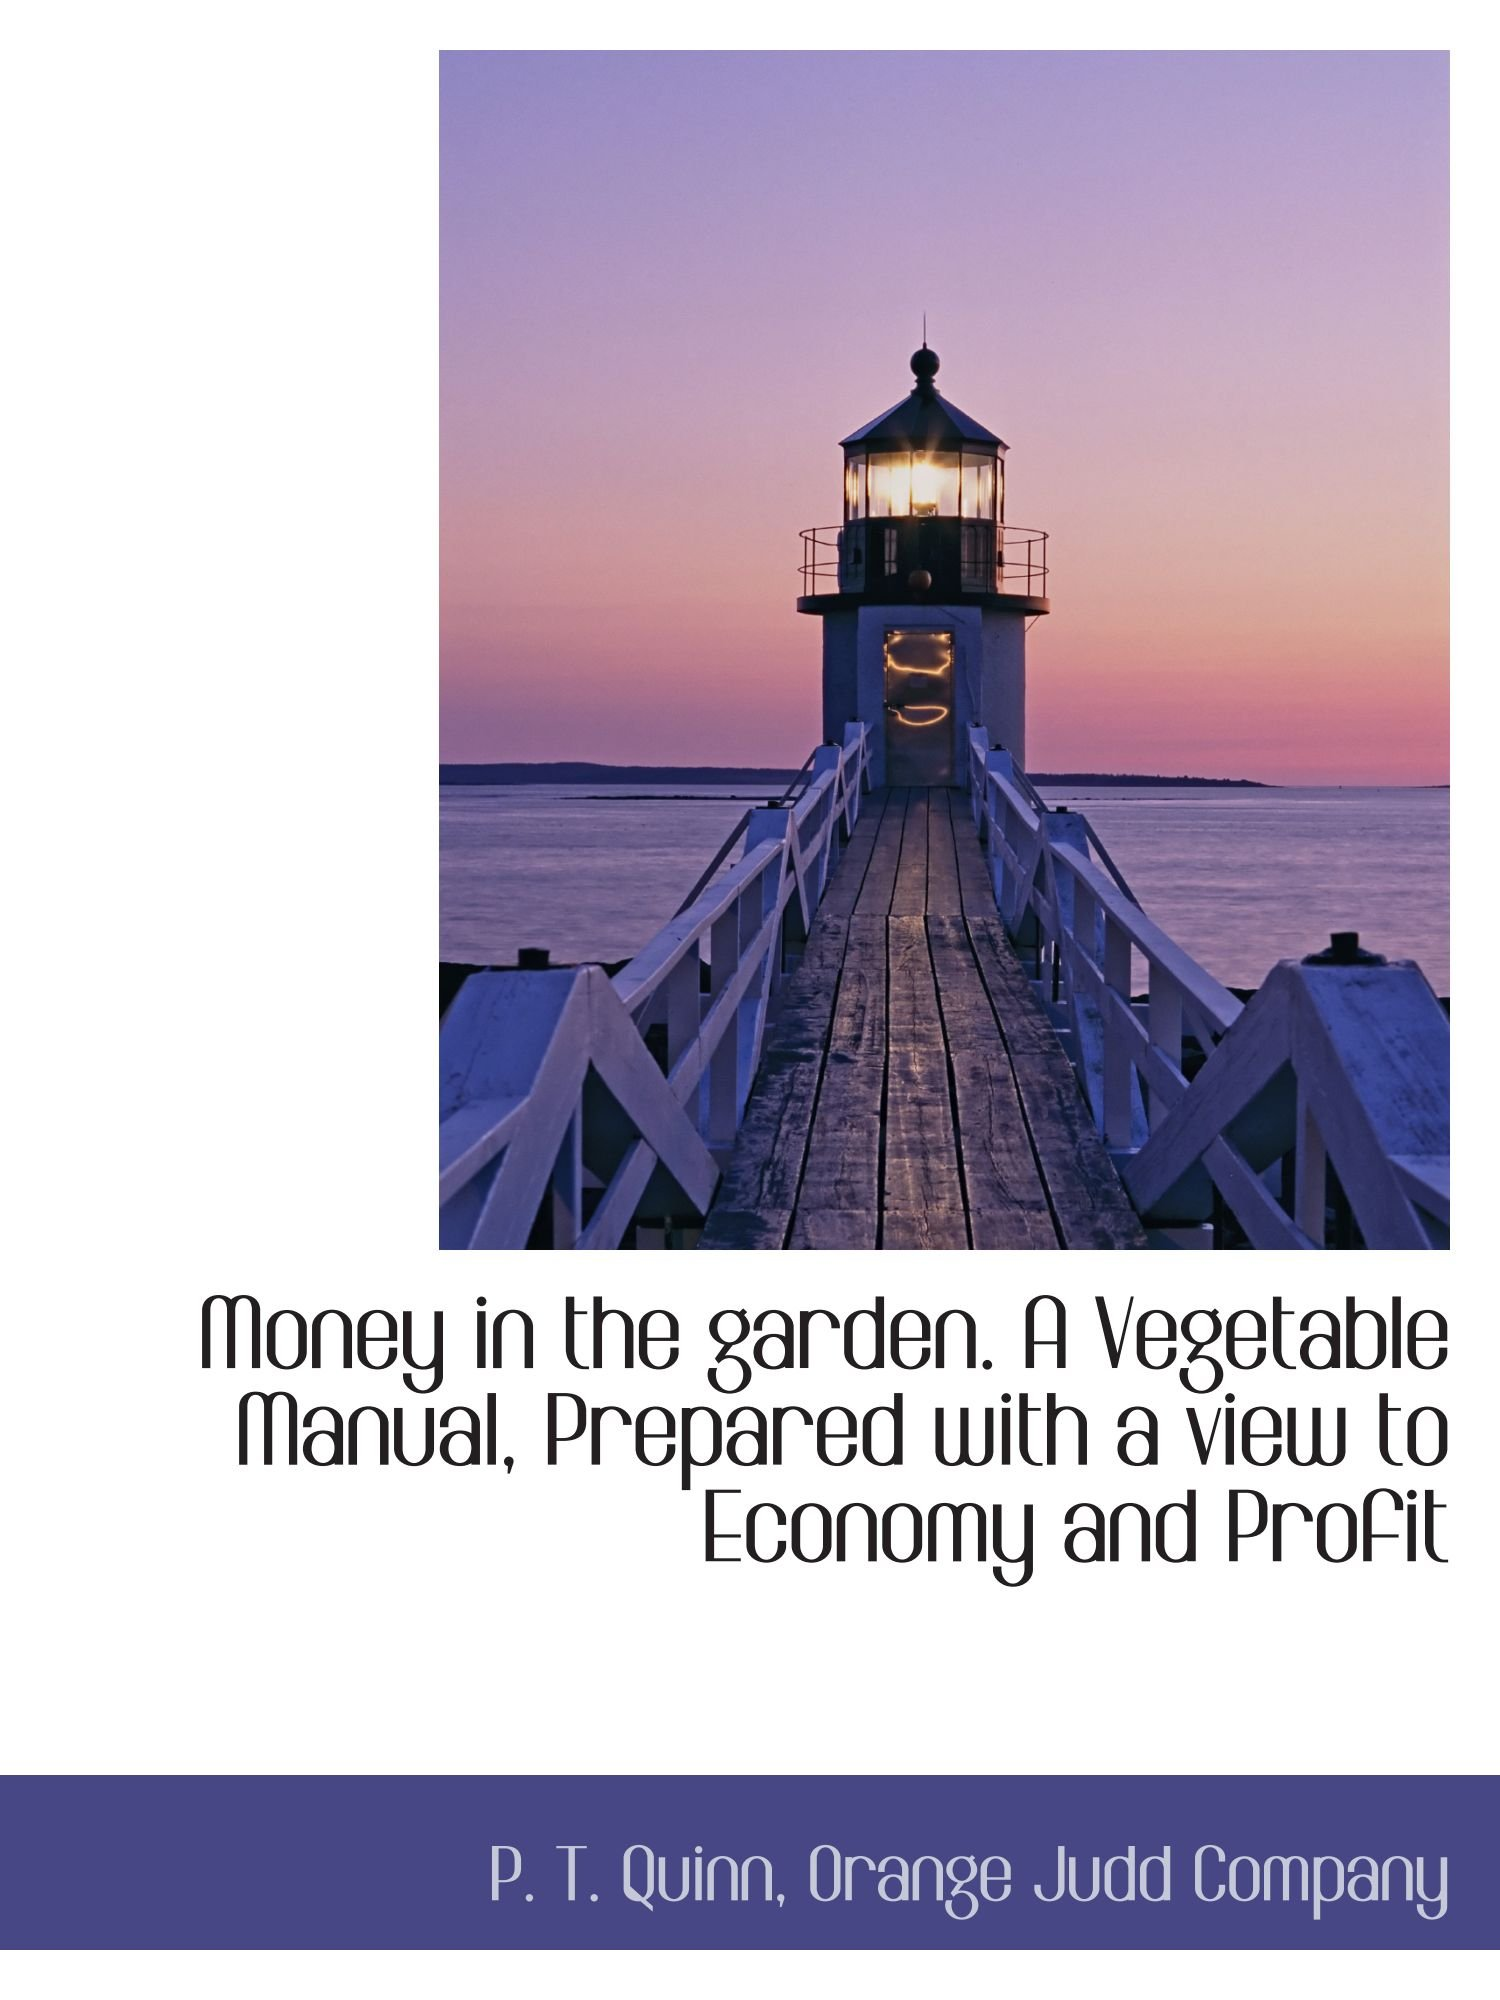 Download Money in the garden. A Vegetable Manual, Prepared with a view to Economy and Profit ebook